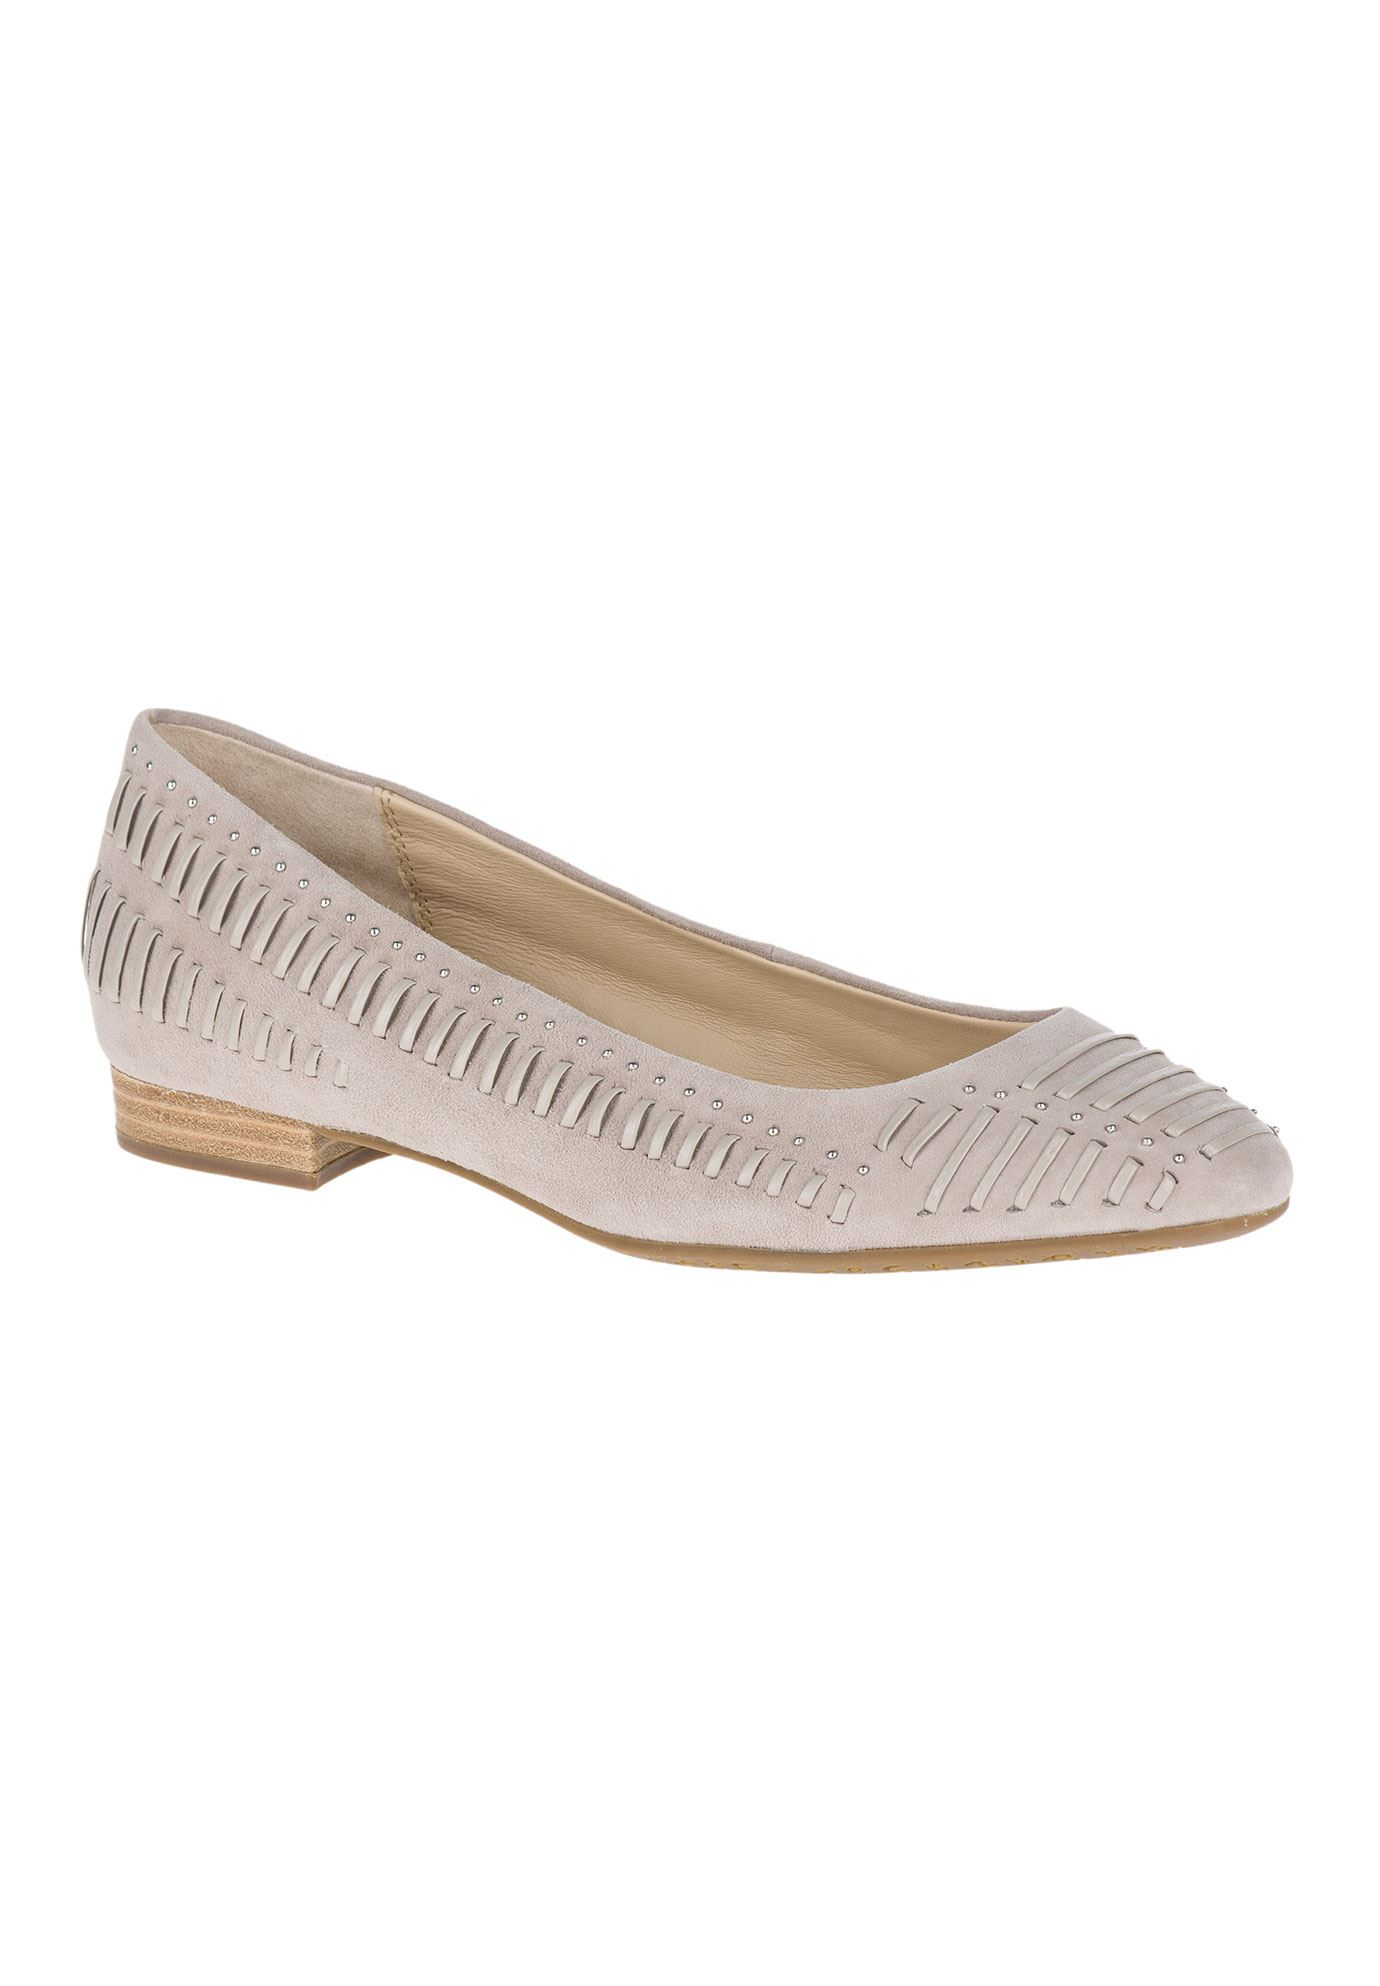 Phoebe Ladder Stud Flats by Hush Puppies®,